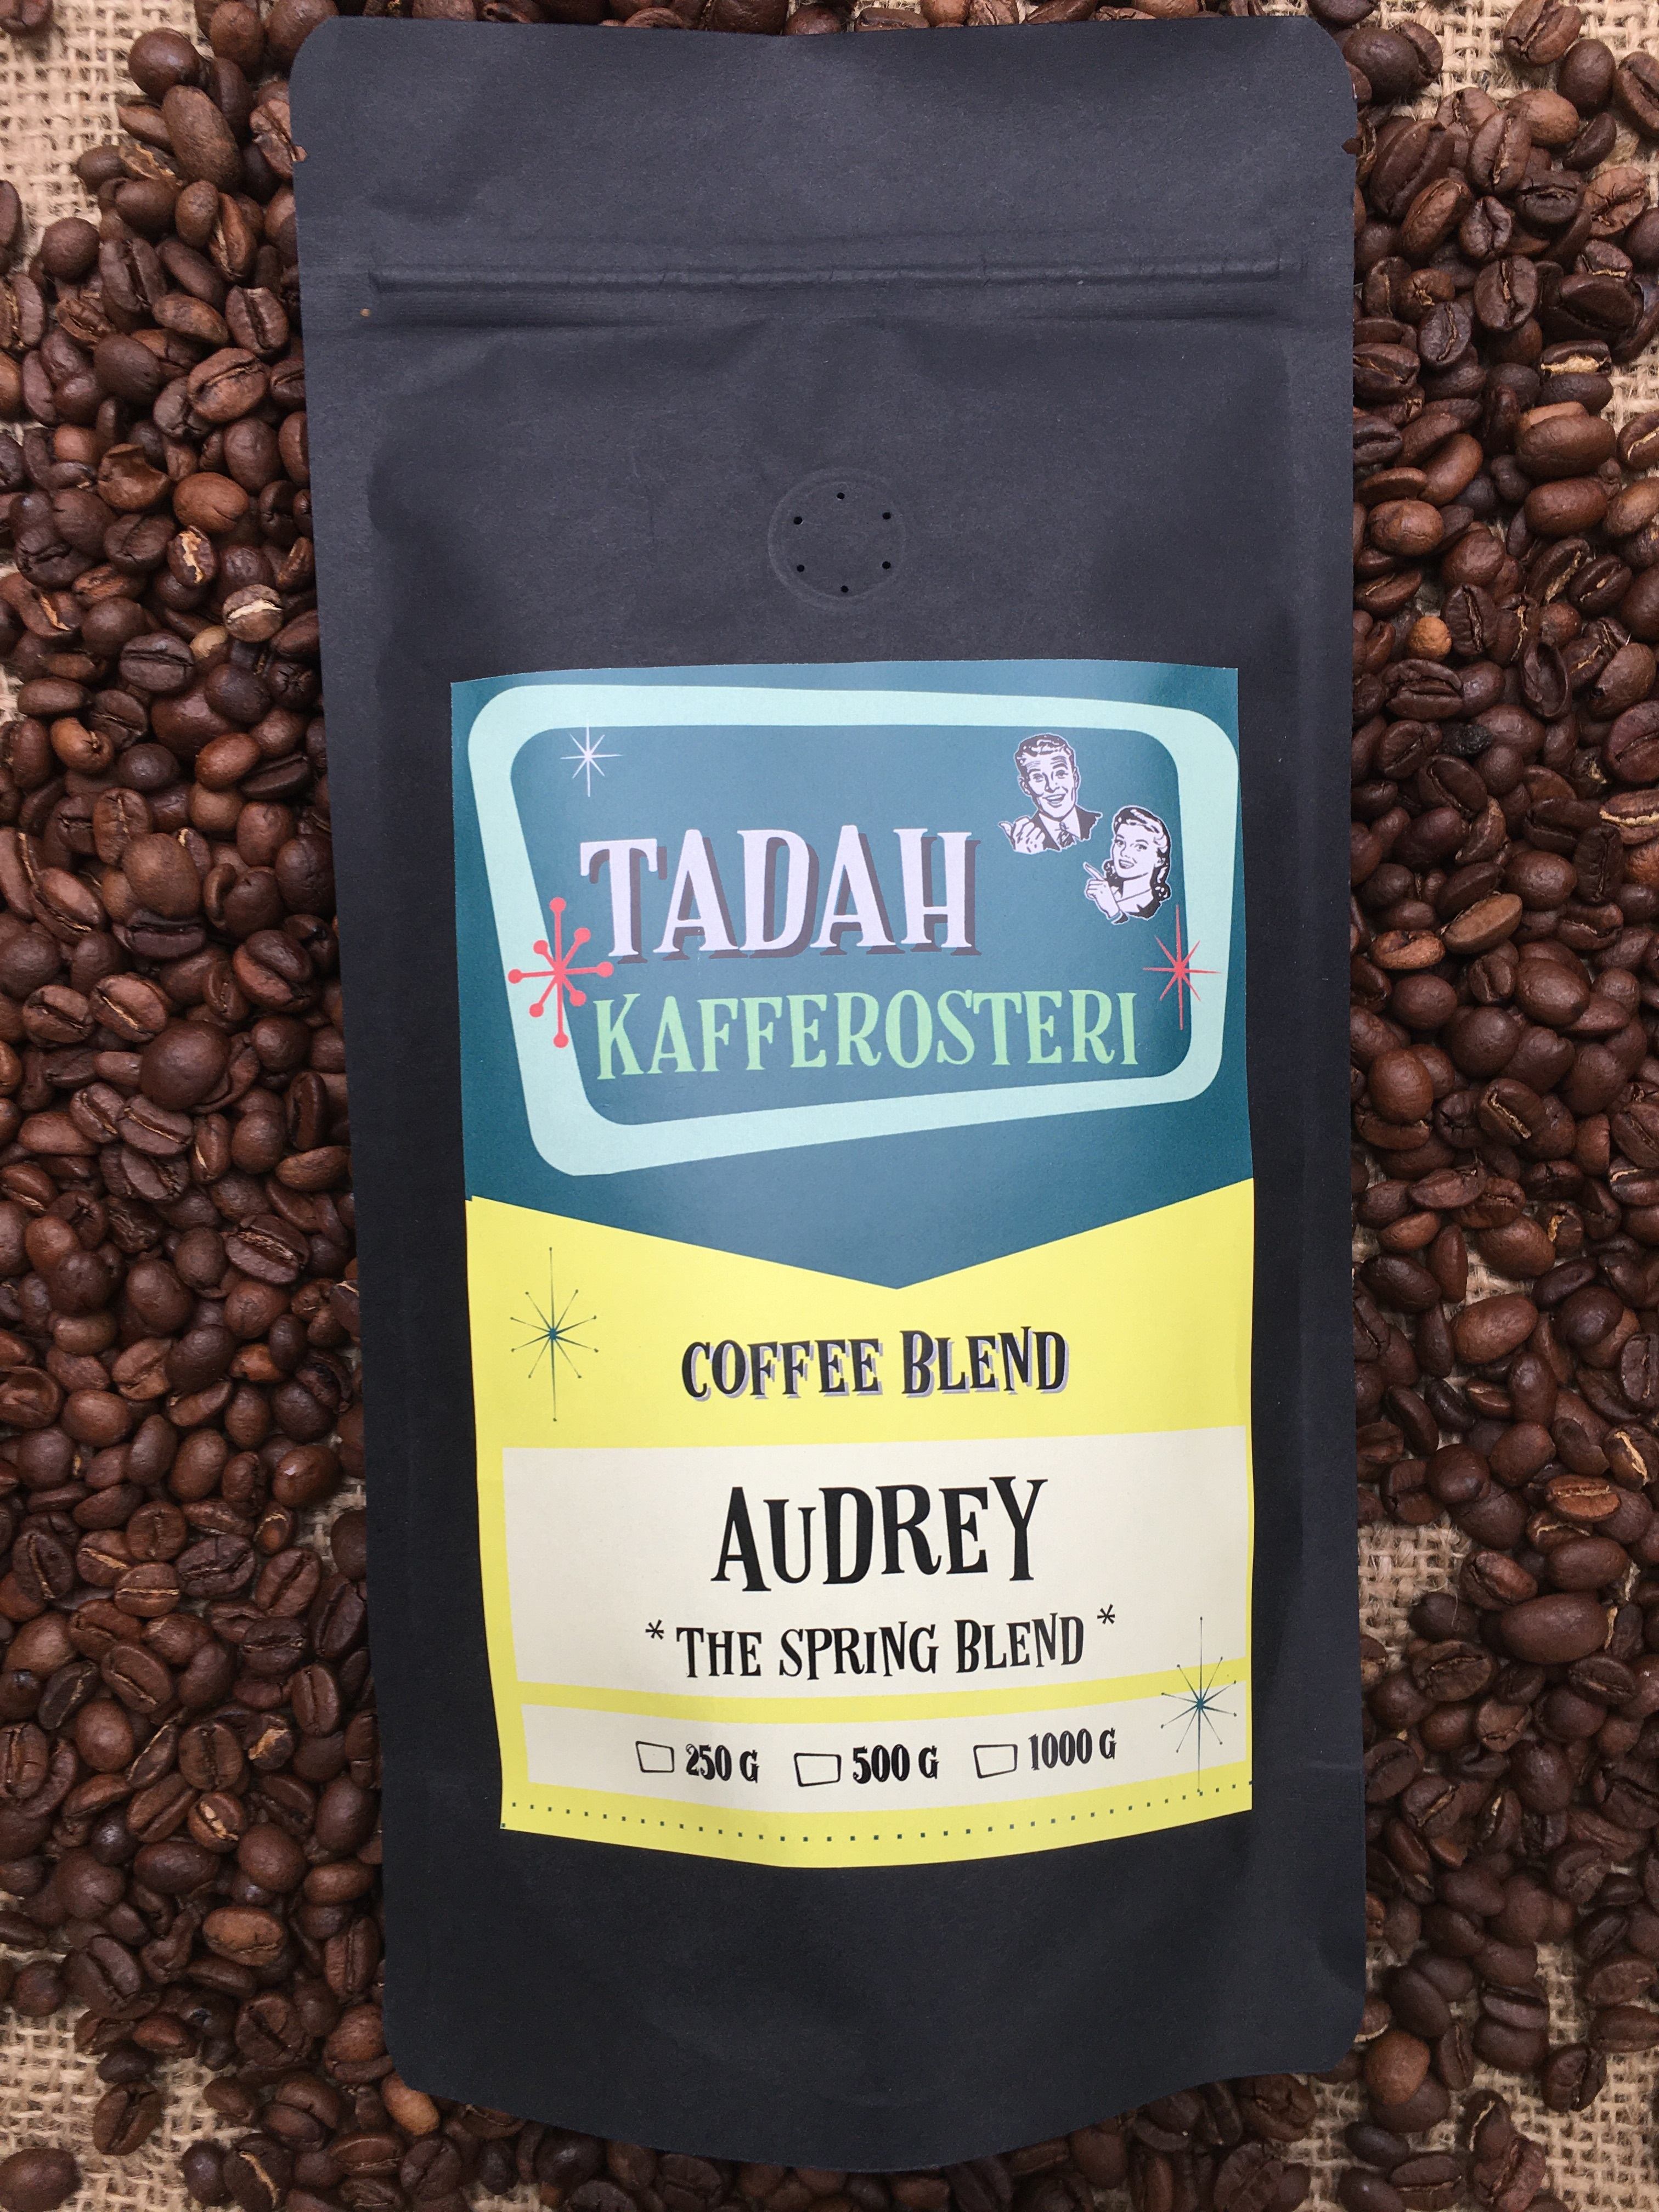 Audrey - the spring blend